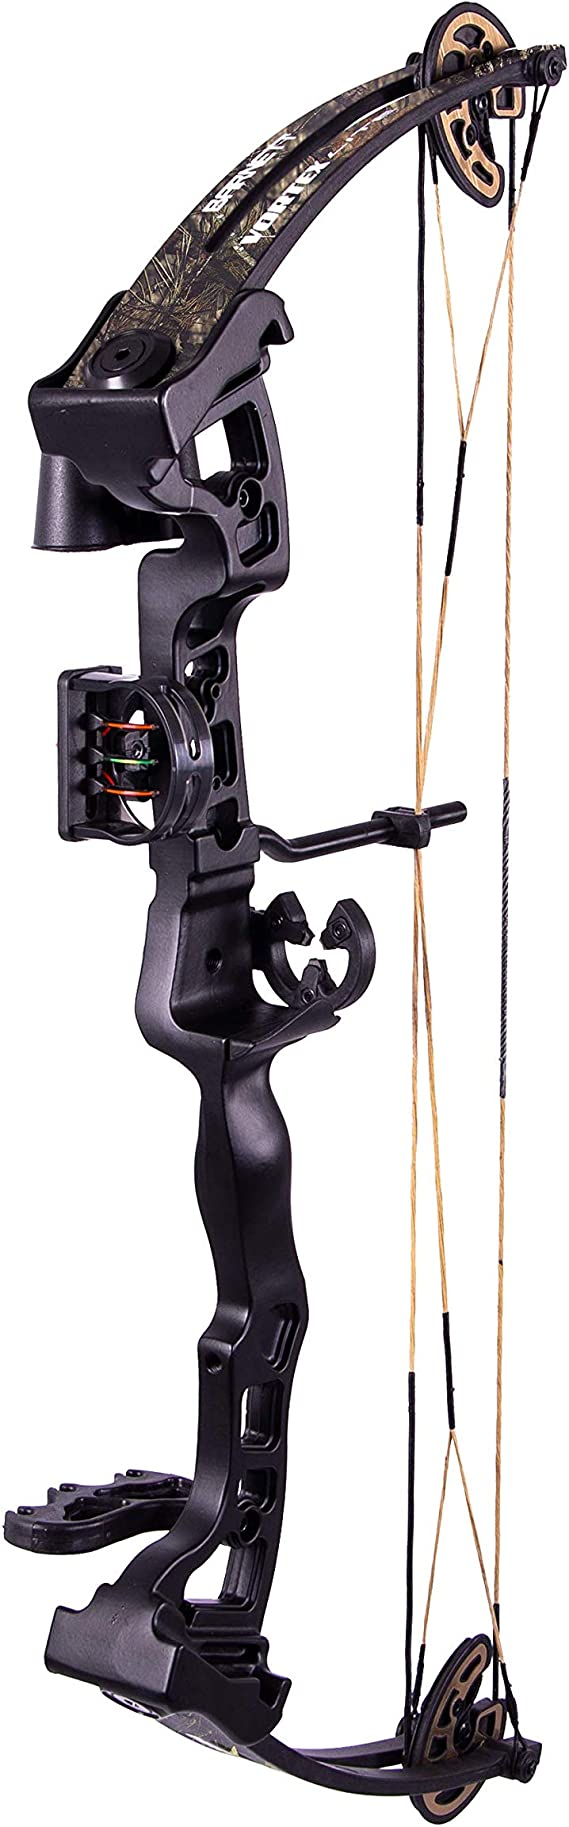 BARNETT Vortex Lite Youth Compound Bow